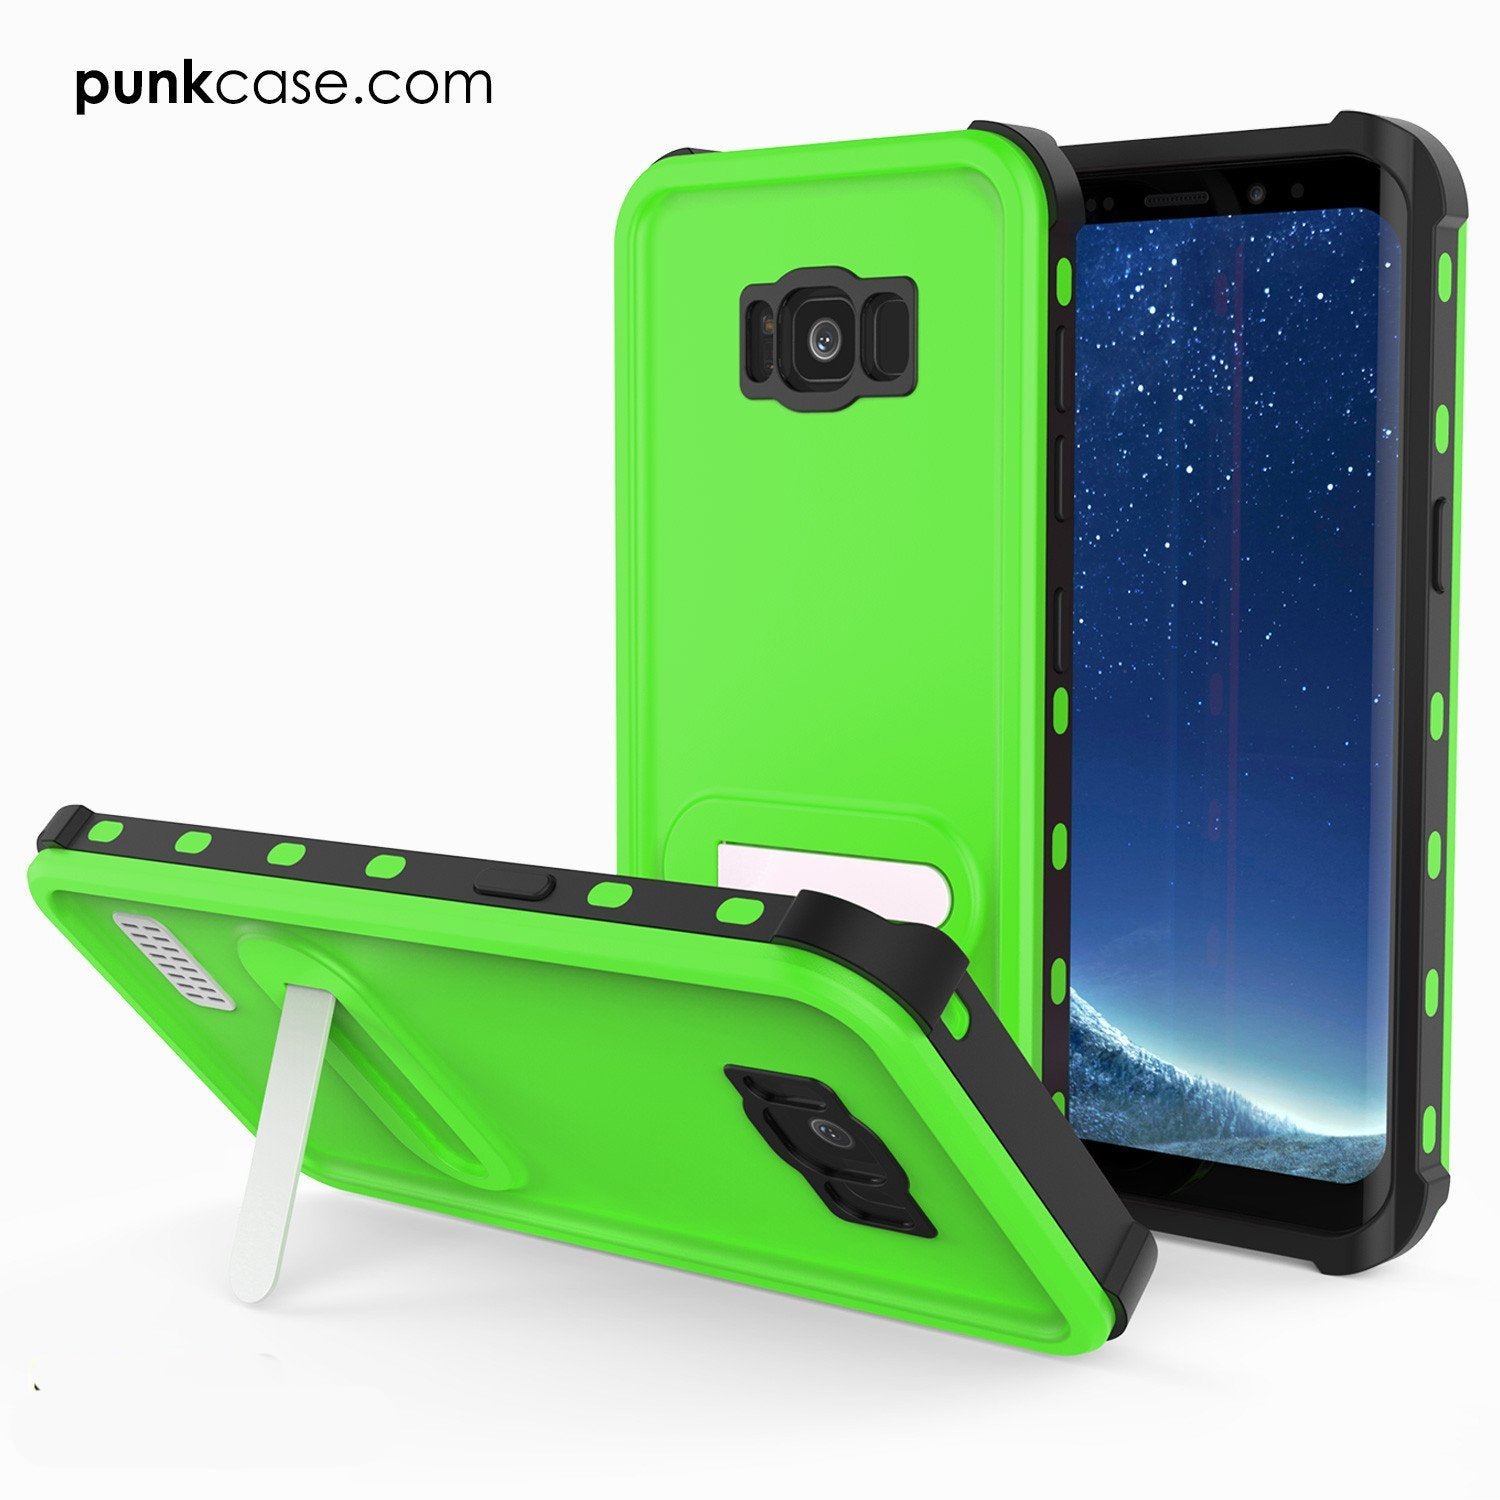 Galaxy S8 Waterproof Case, Punkcase [KickStud Series] [Slim Fit] [IP68 Certified] [Shockproof] [Snowproof] Armor Cover W/ Built-In Kickstand [GREEN]